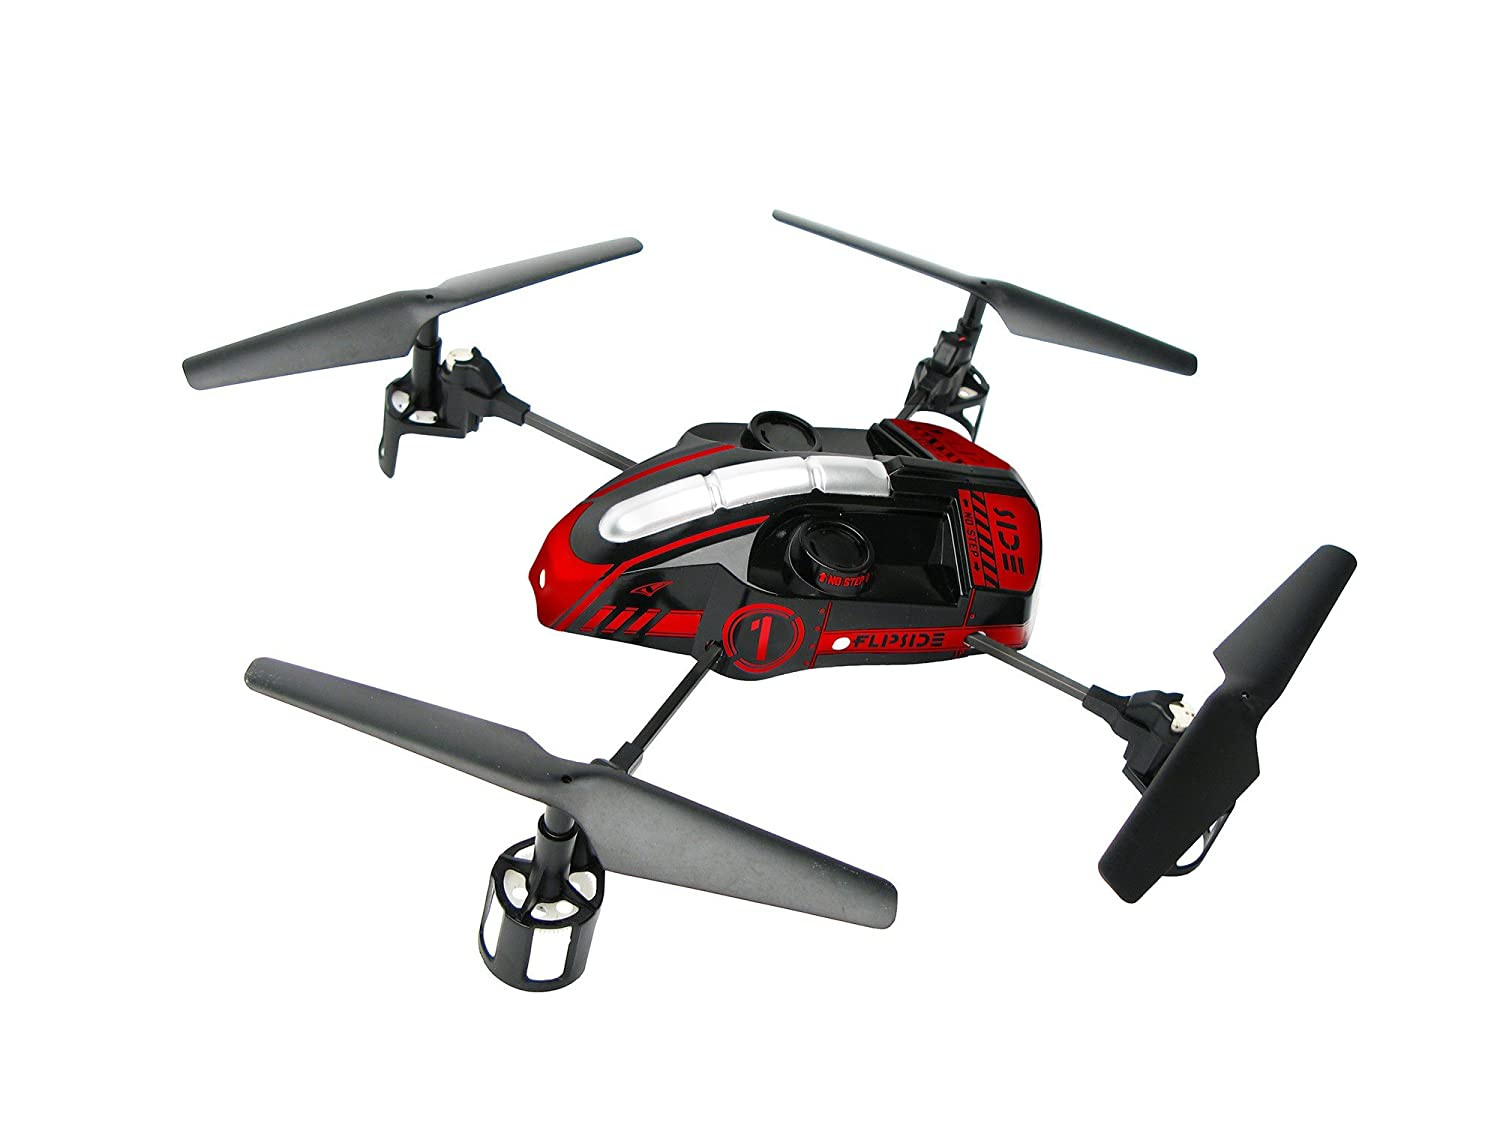 EZ Fly RC 101R Flipside Quadcopter, Red